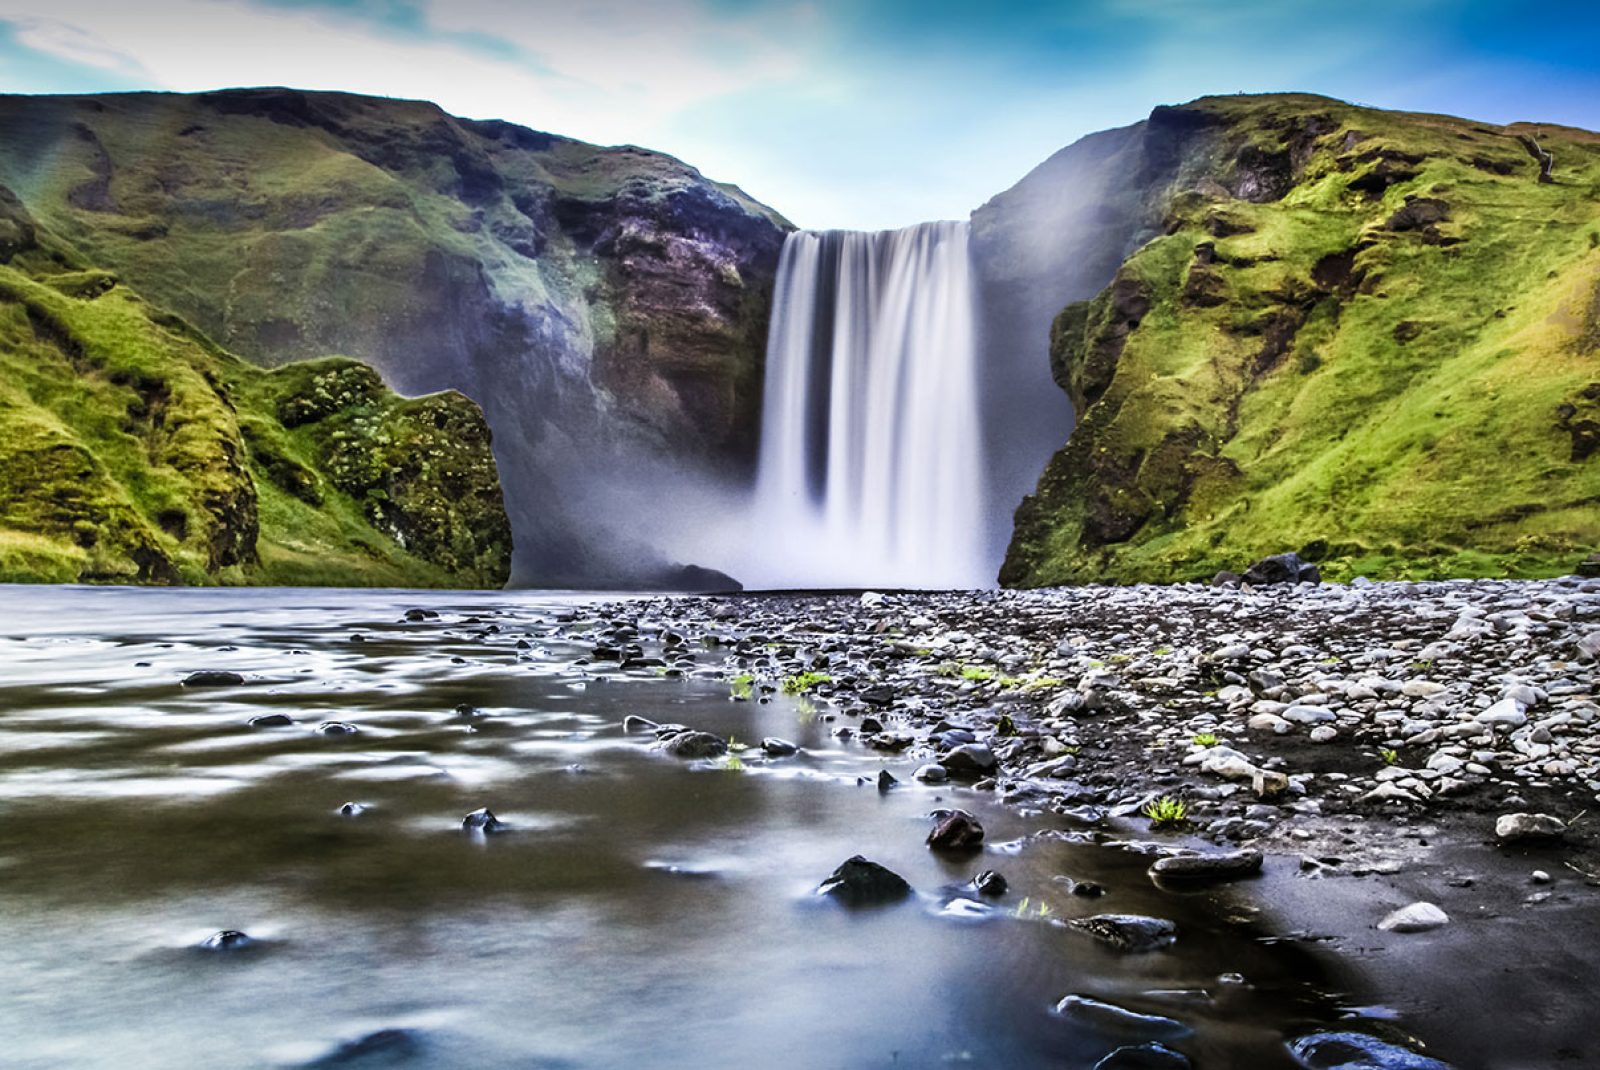 Source: https://www.avis.co.uk/inspires/destinations/europe/iceland/ring-fire-iceland/